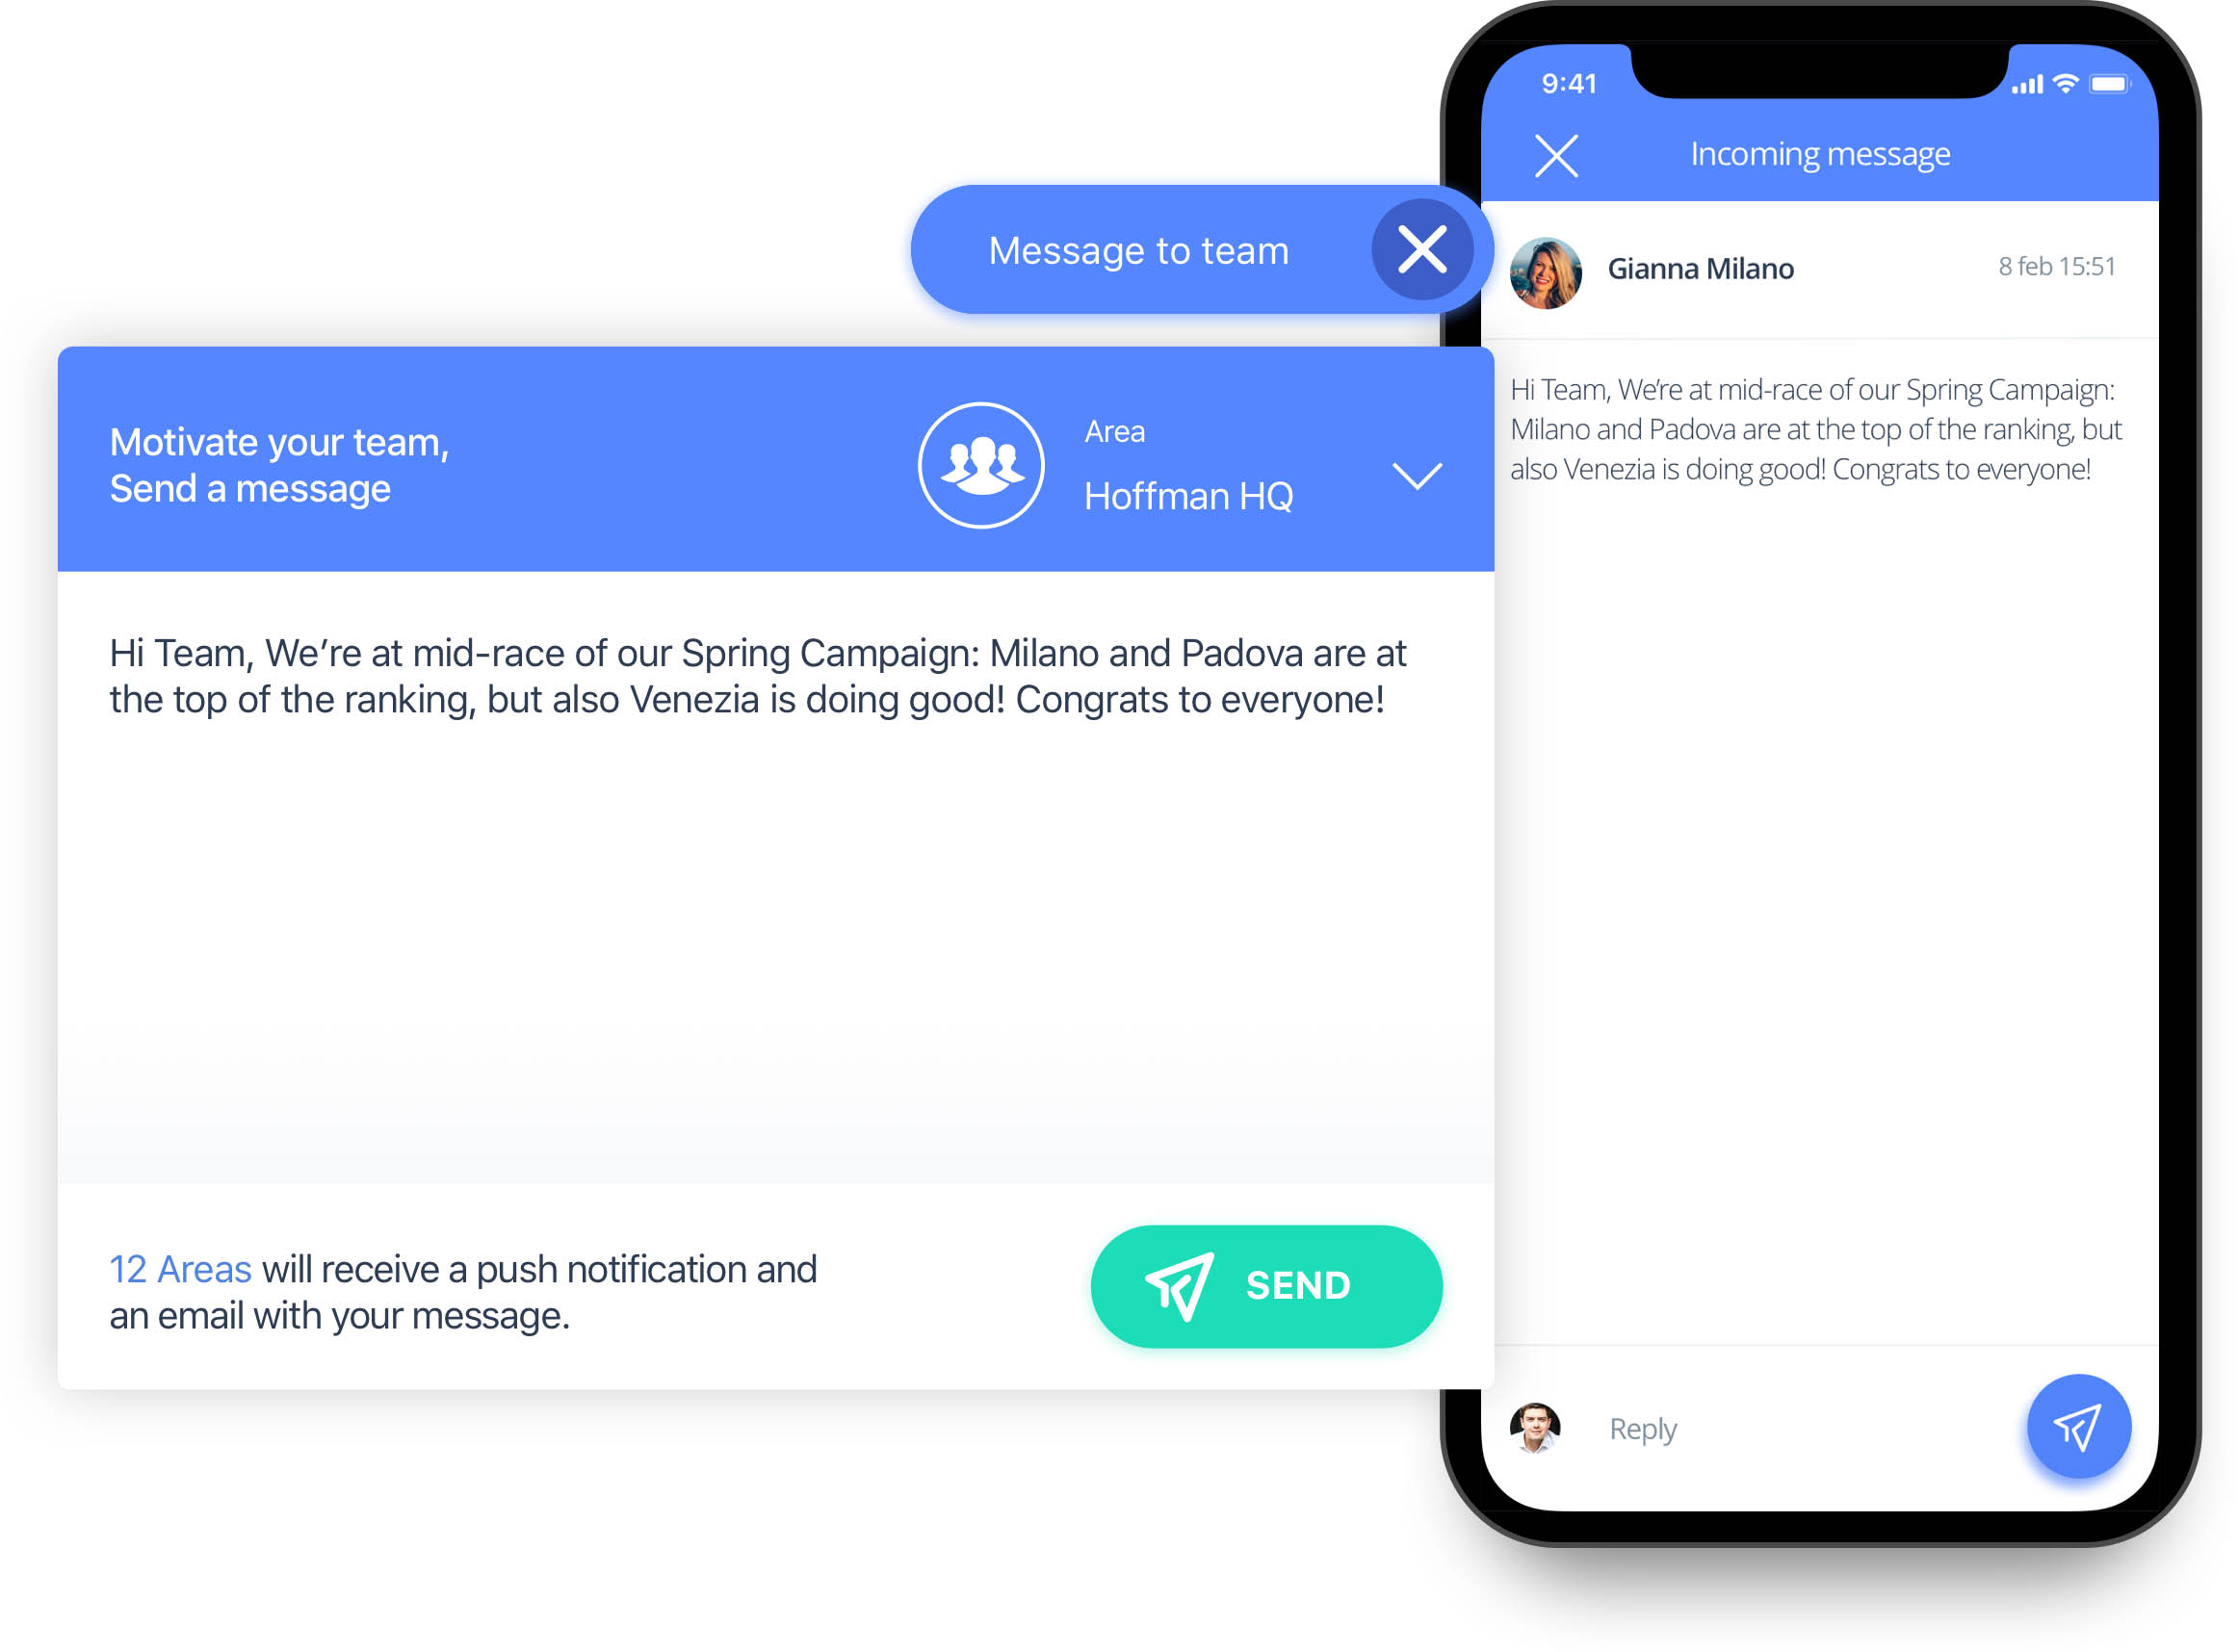 Send messages to your team